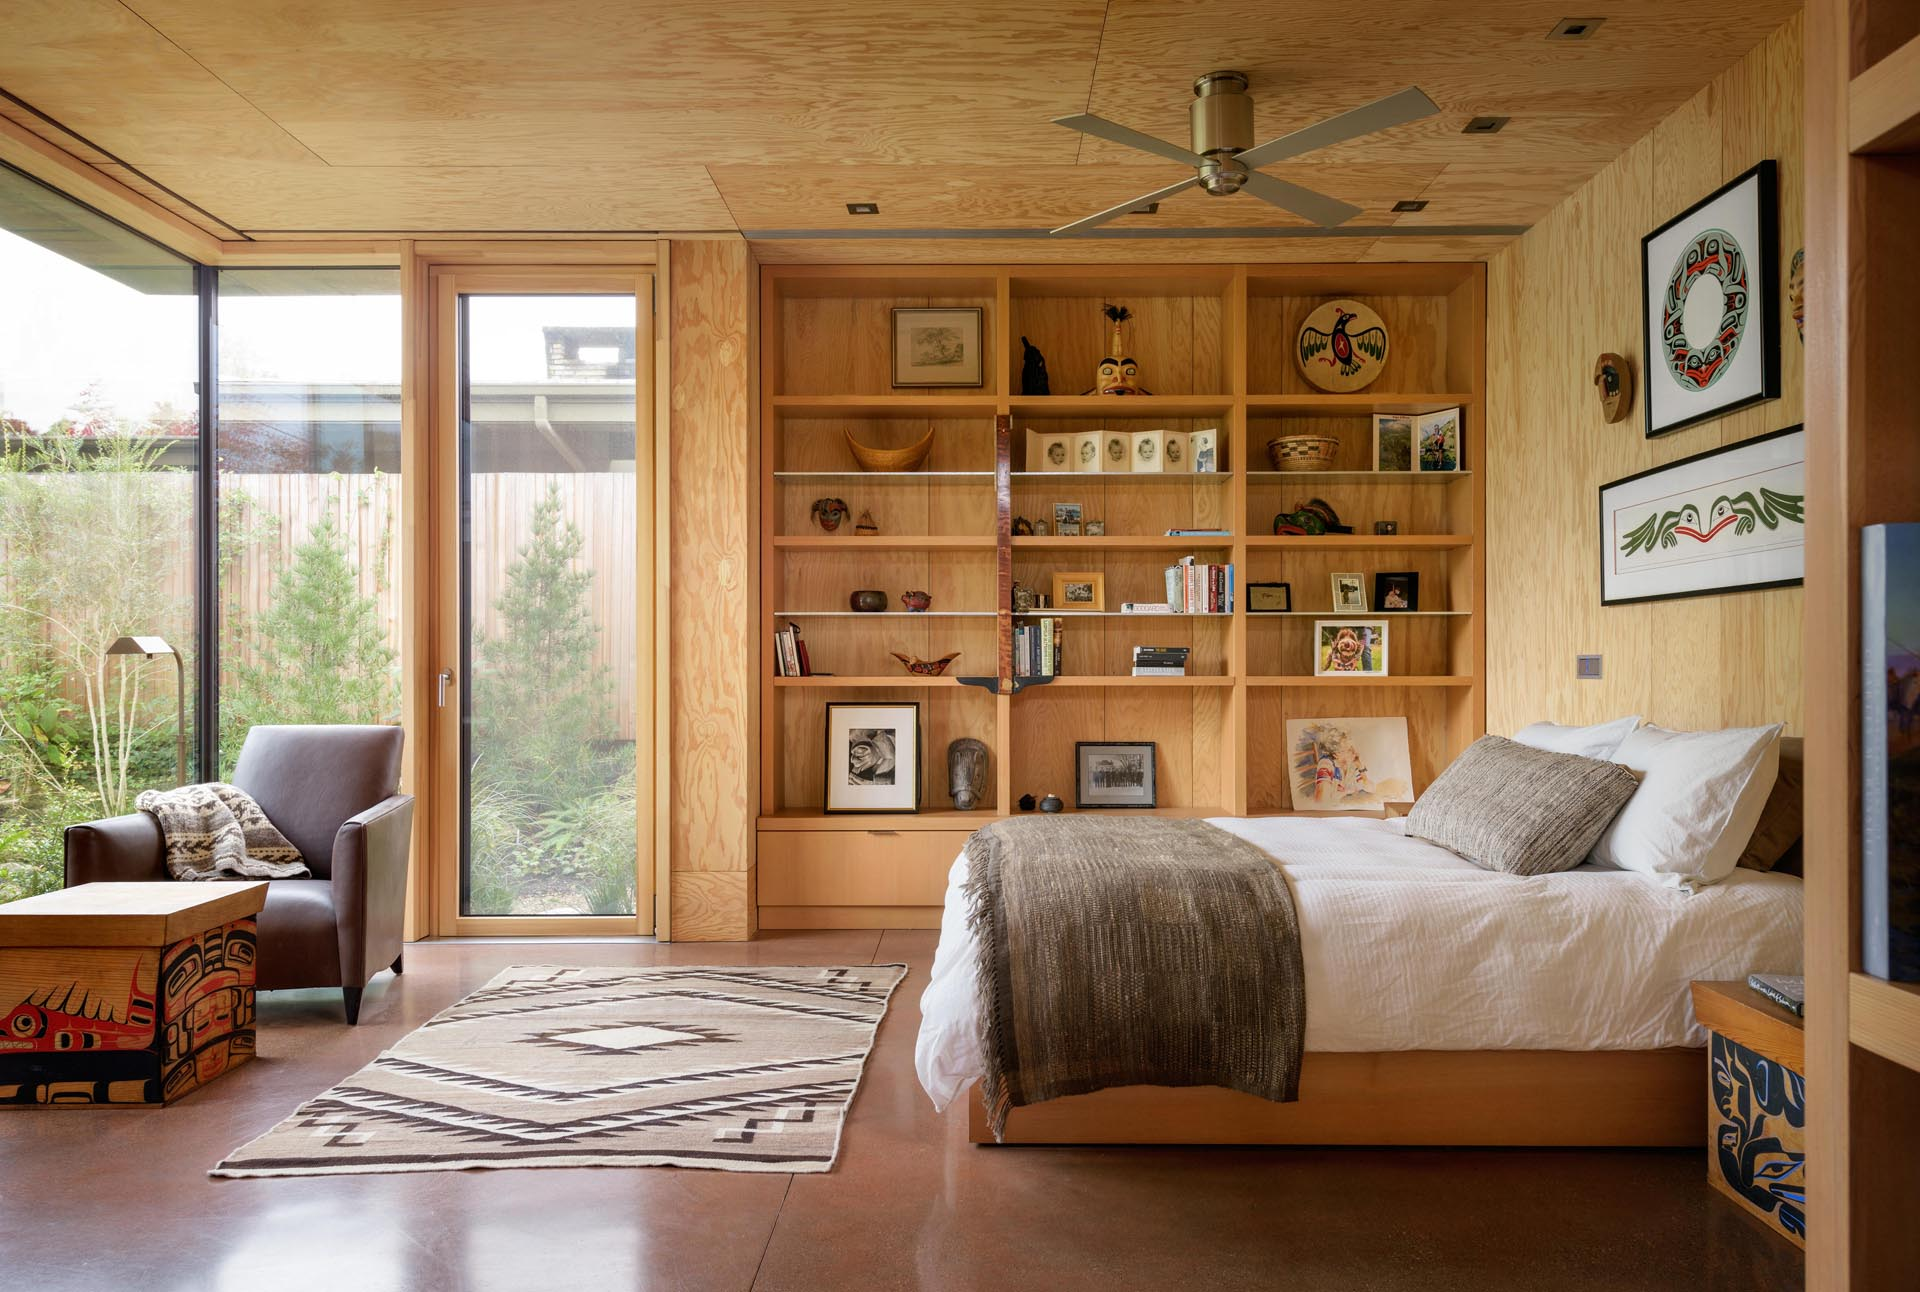 A bedroom with concrete floors and wood shelving.